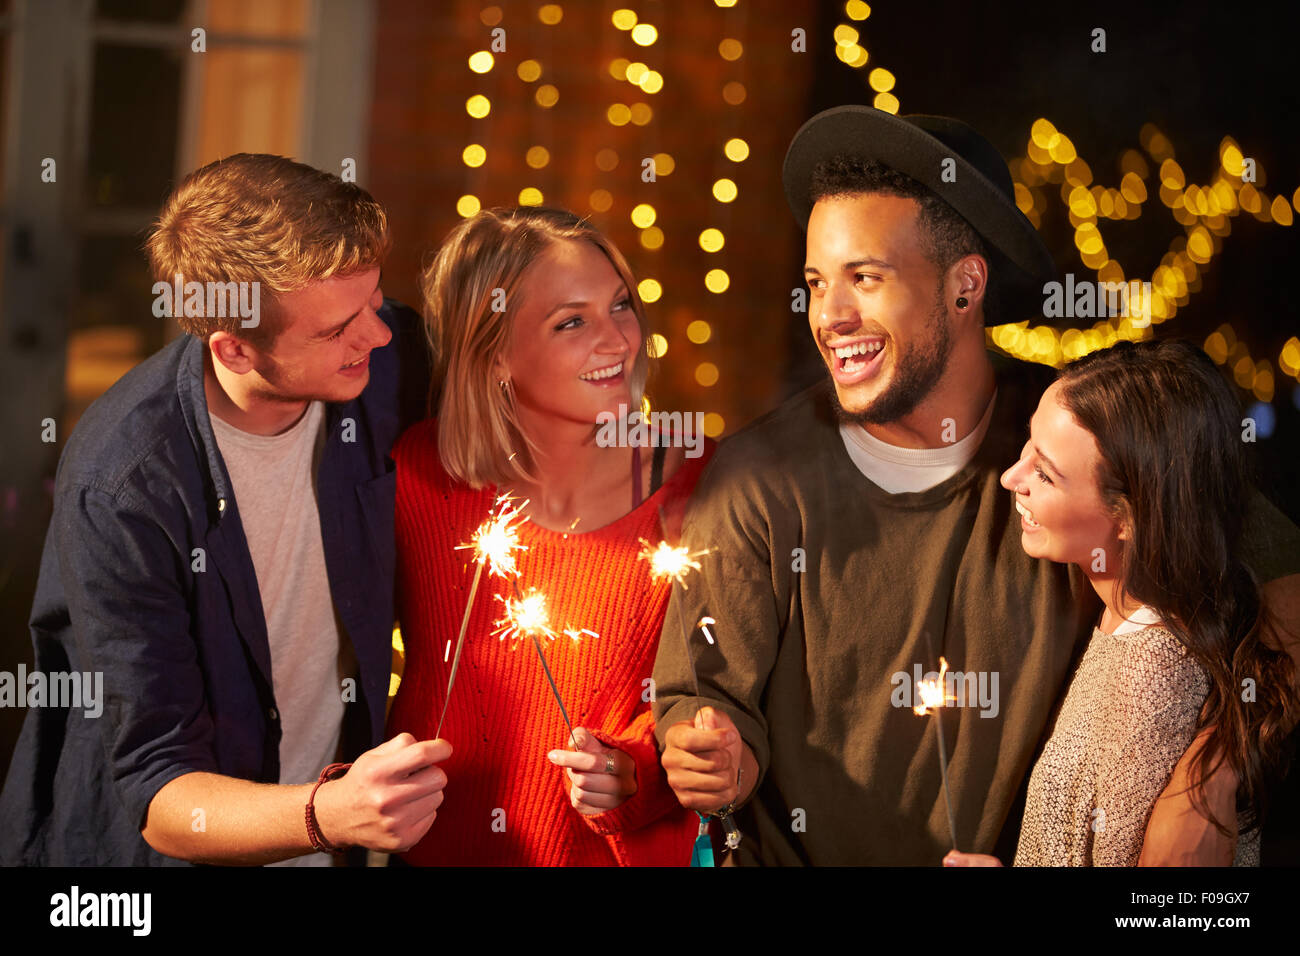 Group Of Friends Lighting Sparklers At Outdoor Party Stock Photo